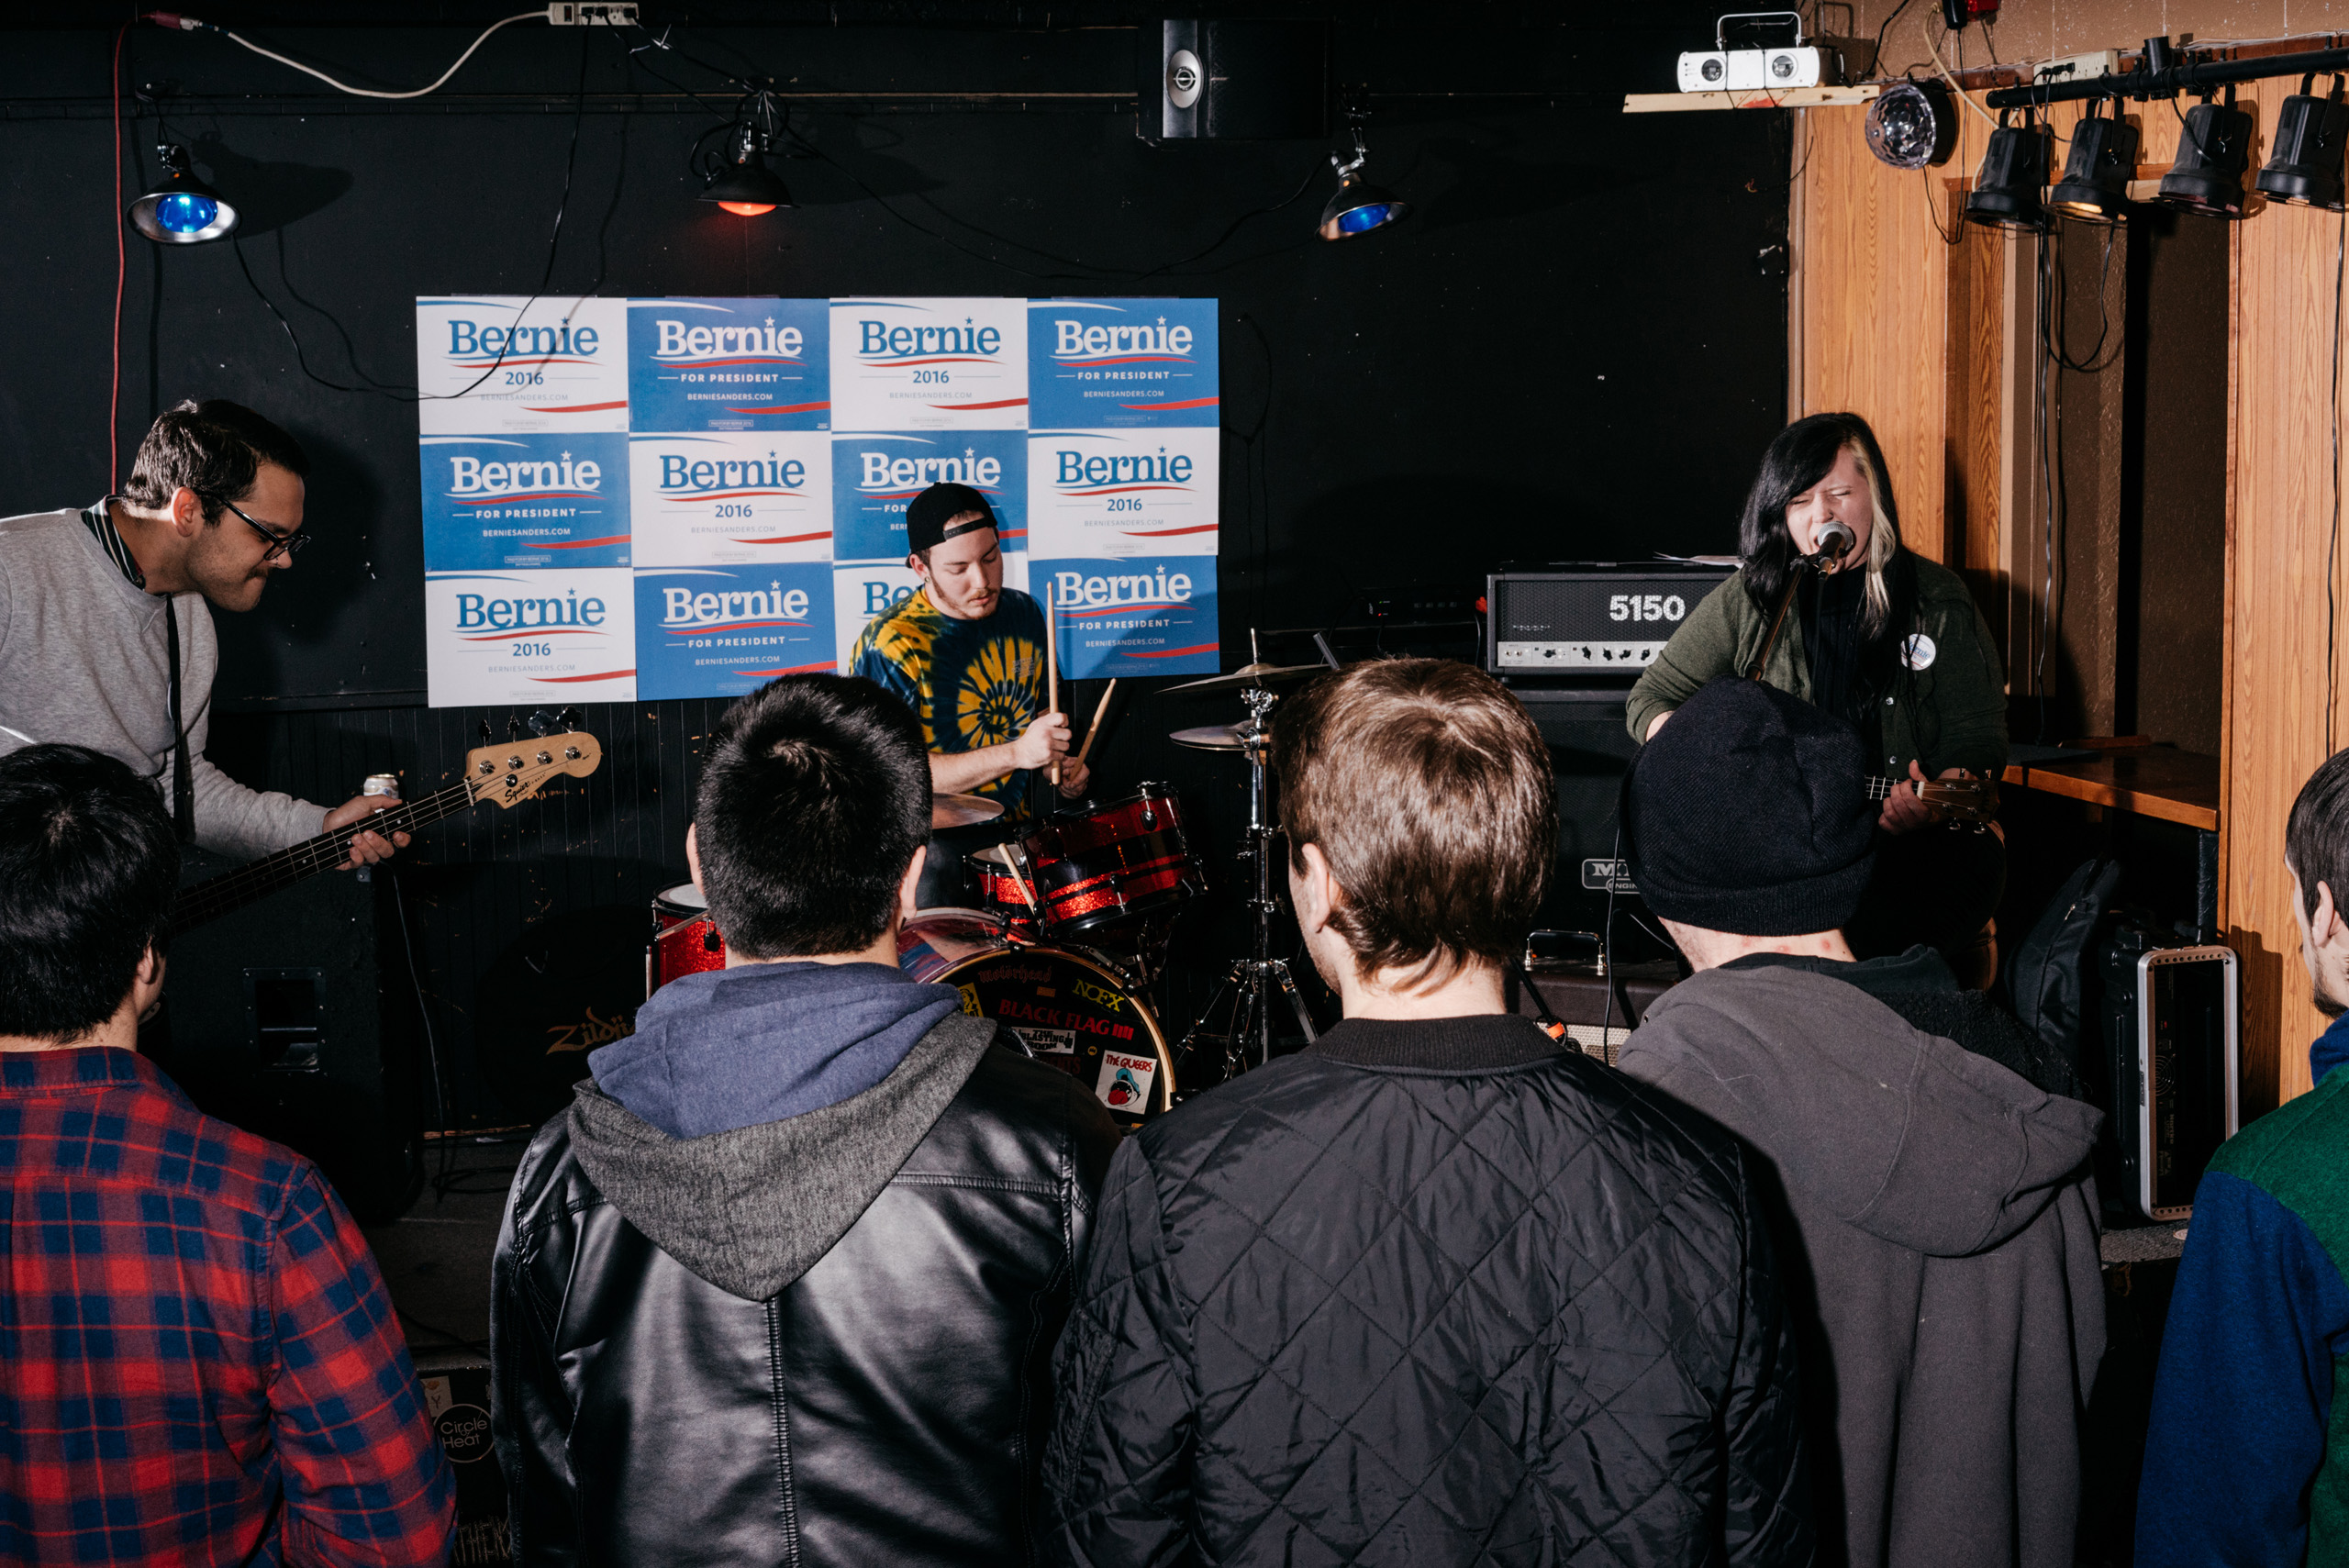 Shutup performs at a Bernie Sanders fundraiser billed as  Waterloo Shred for Bernie: Part 2  at The Wedge bar in Waterloo, IA, Saturday January 23, 2016.